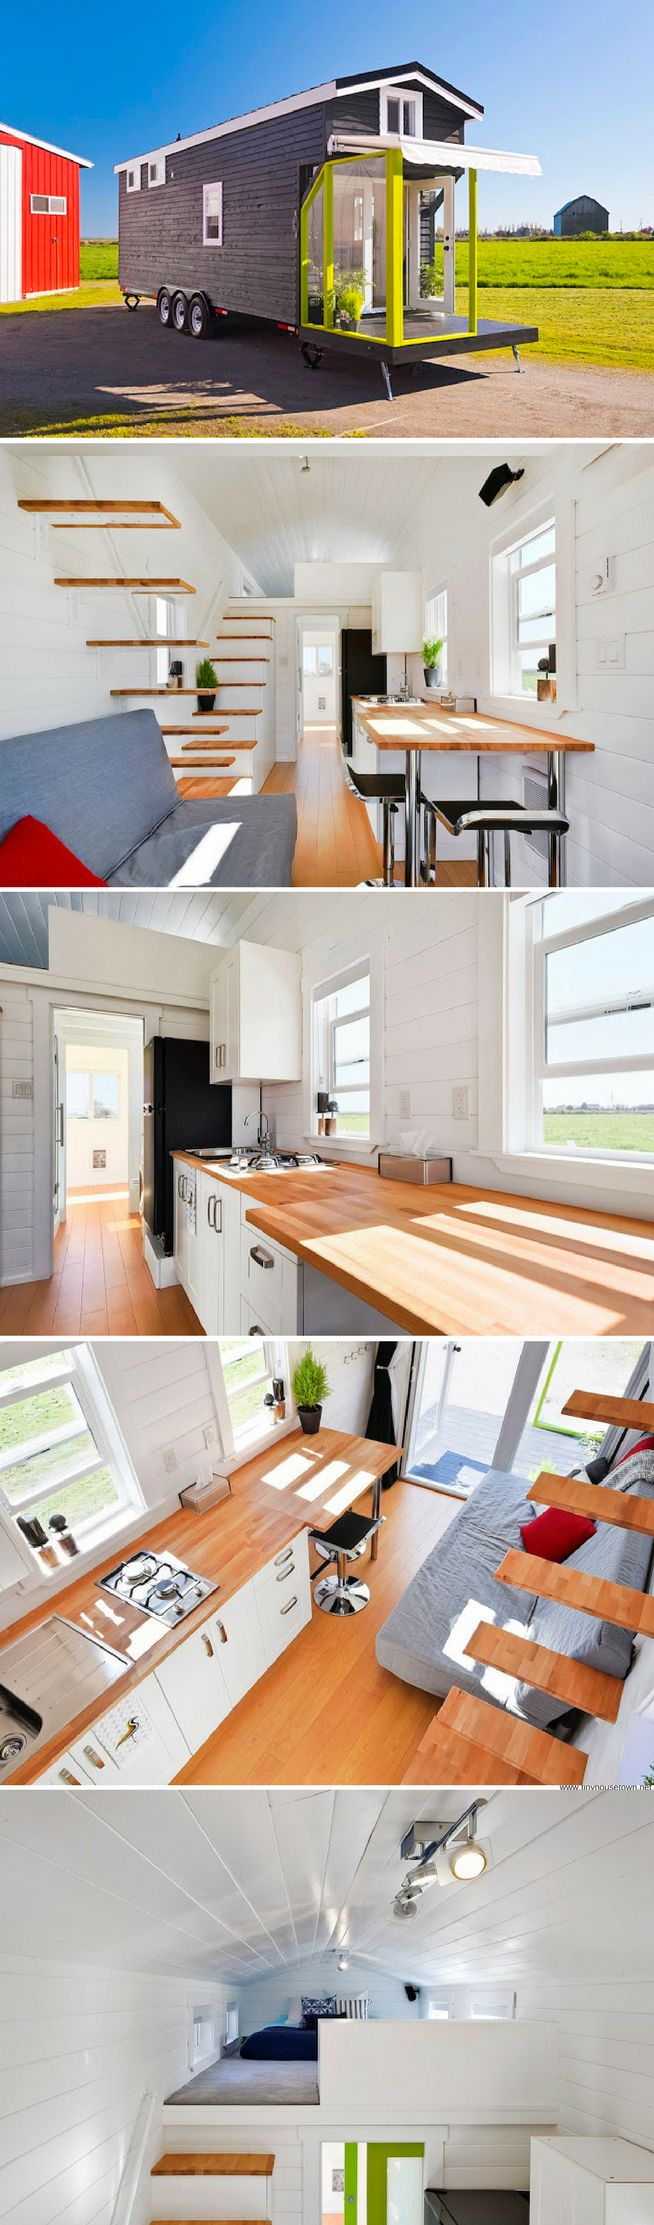 A custom home from the Mint Tiny House Company